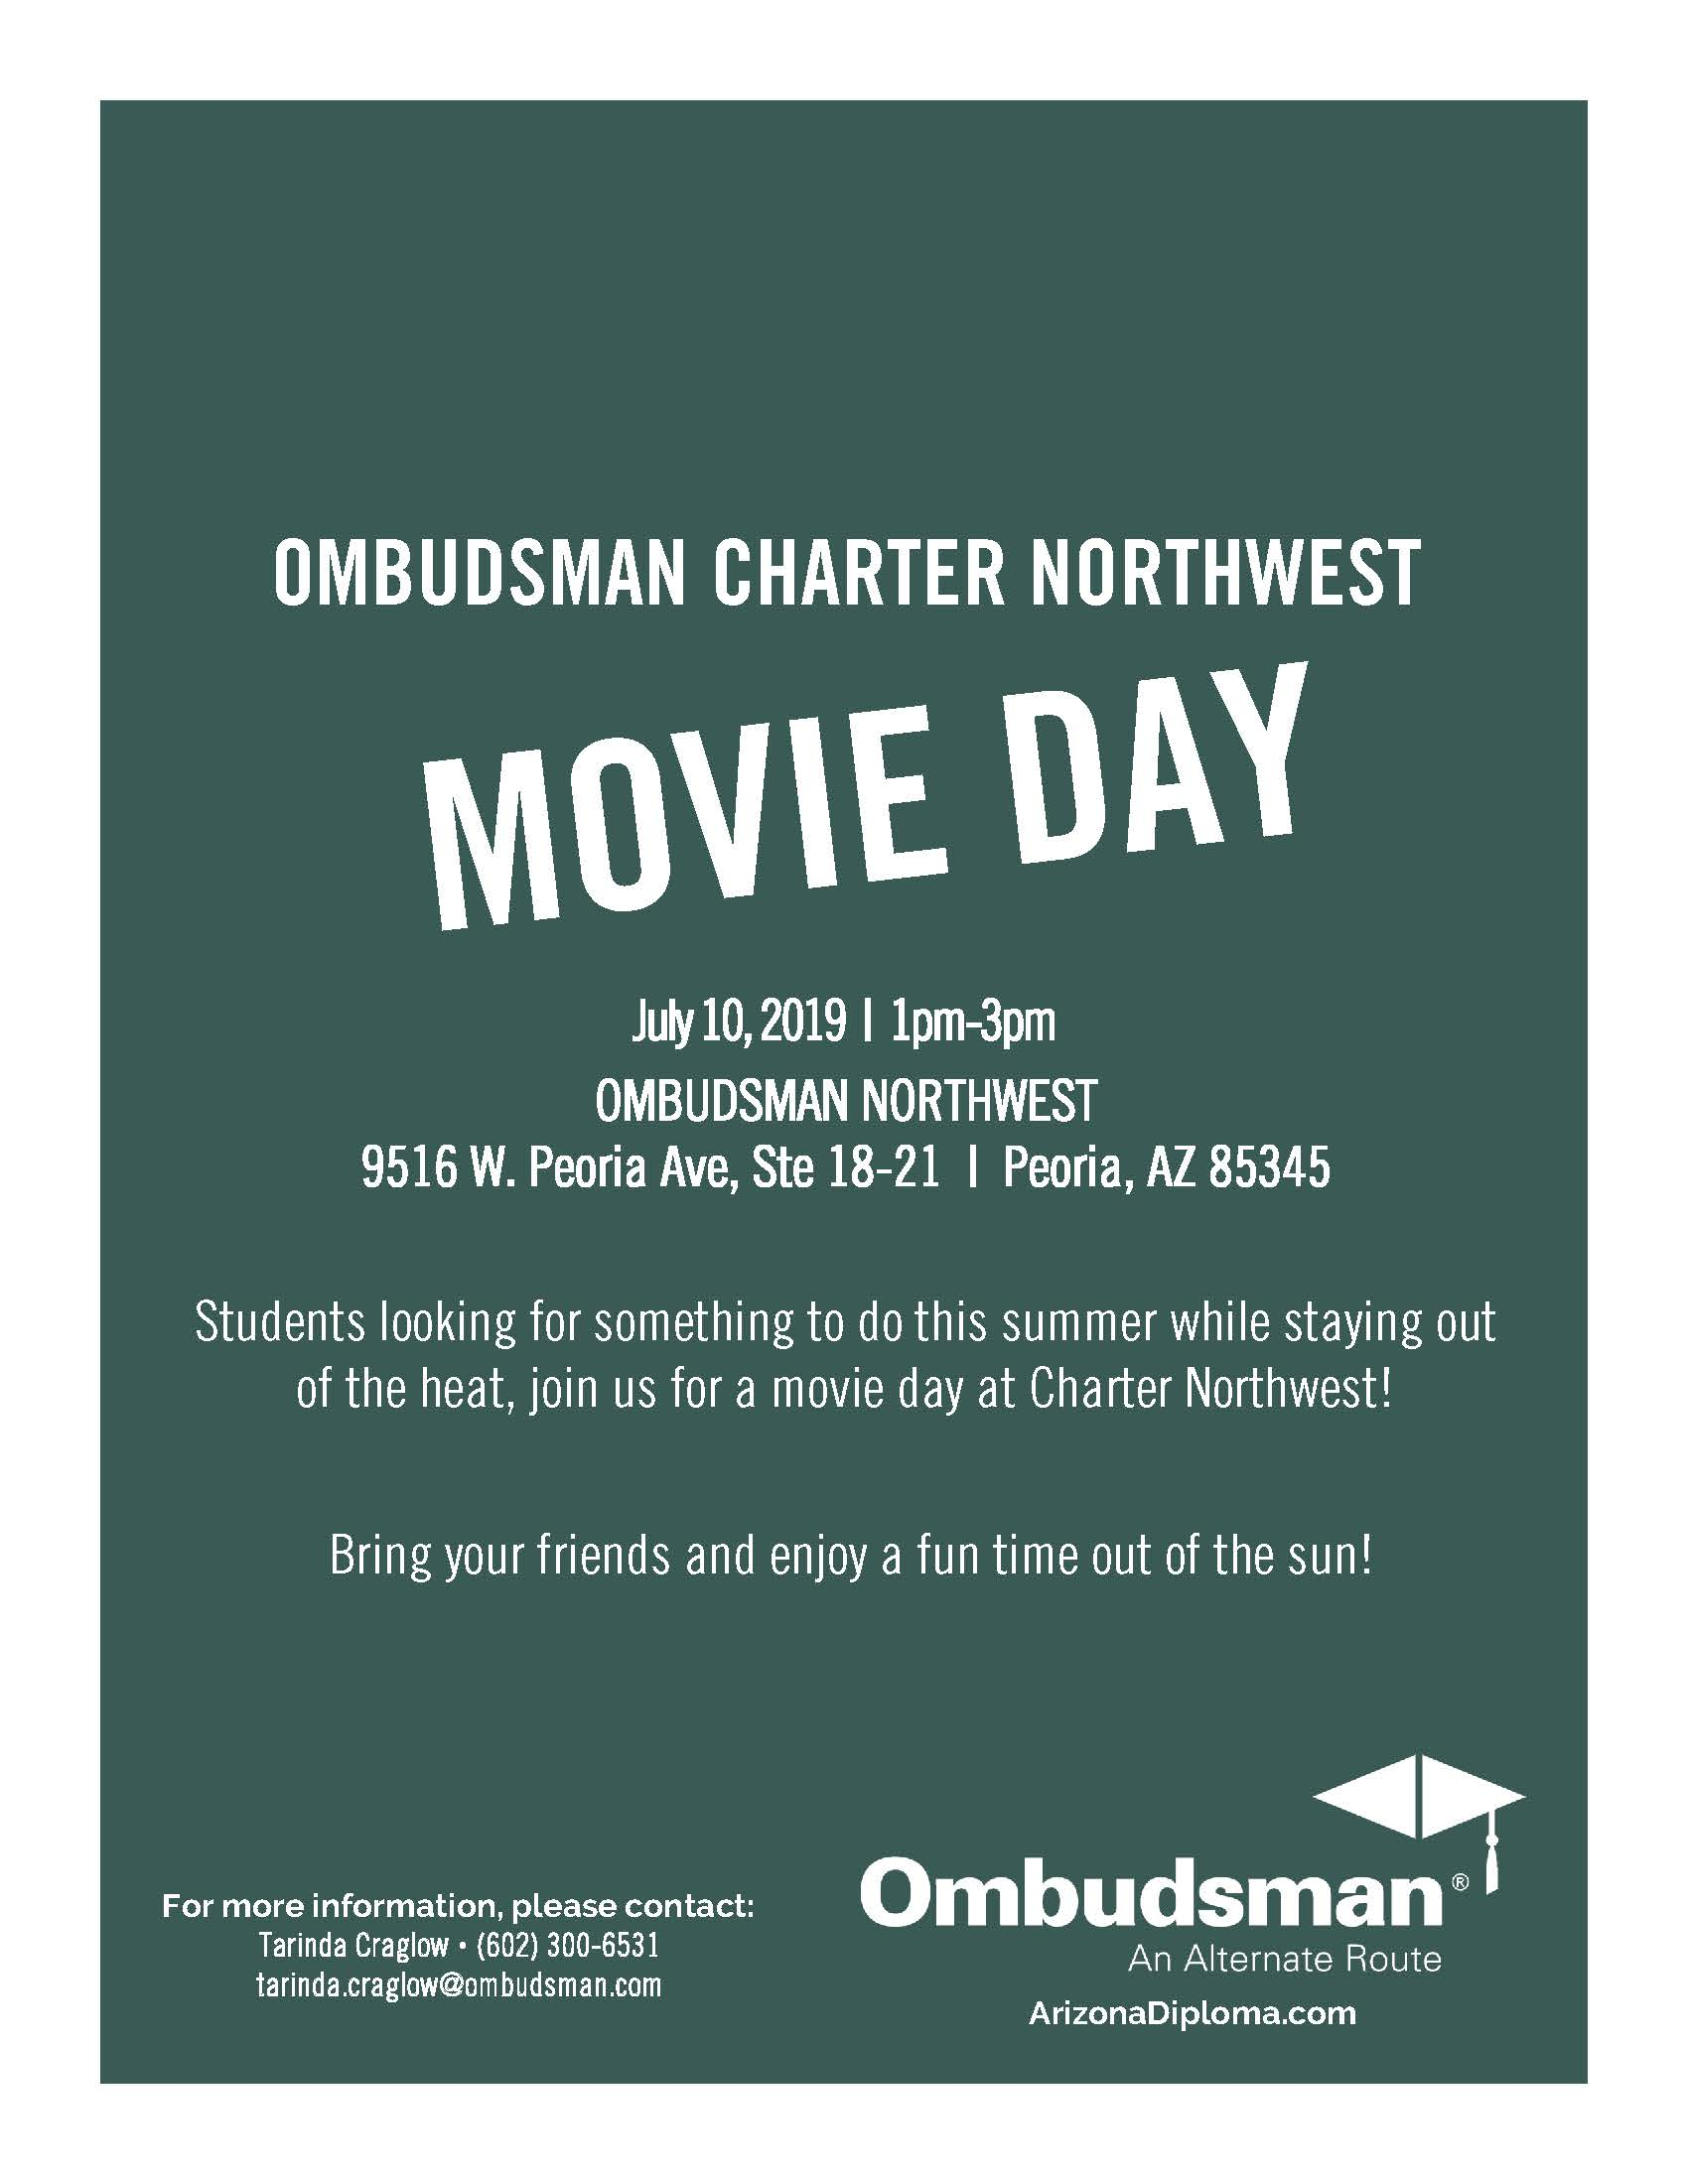 Charter Northwest Movie Day Flyer for Movie day on July 10th from 1pm to 3pm.